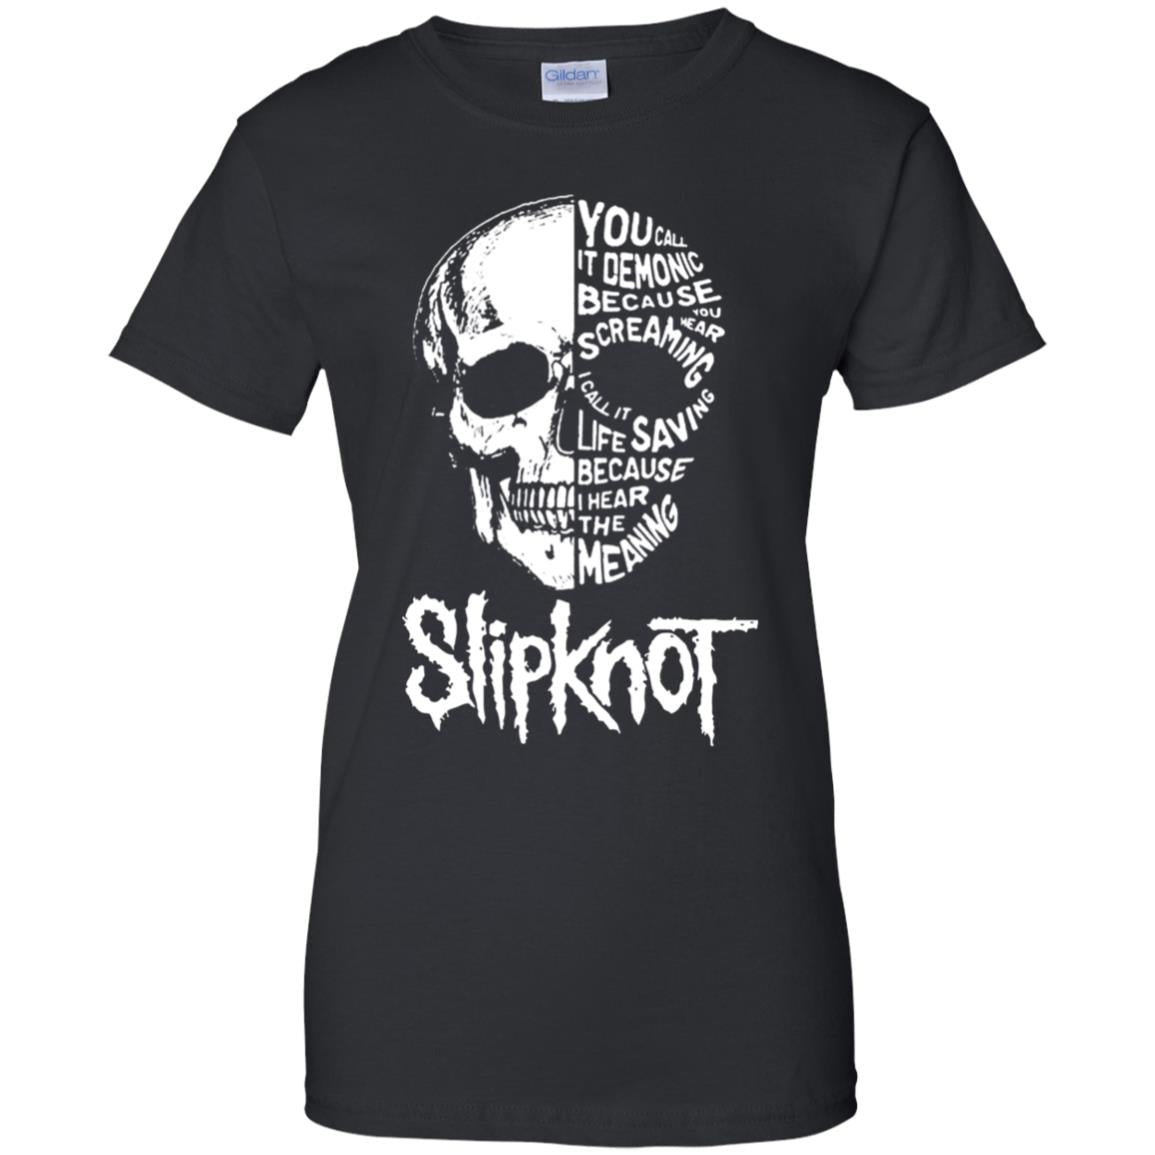 Skull you call it demonic because you hear screaming i call it